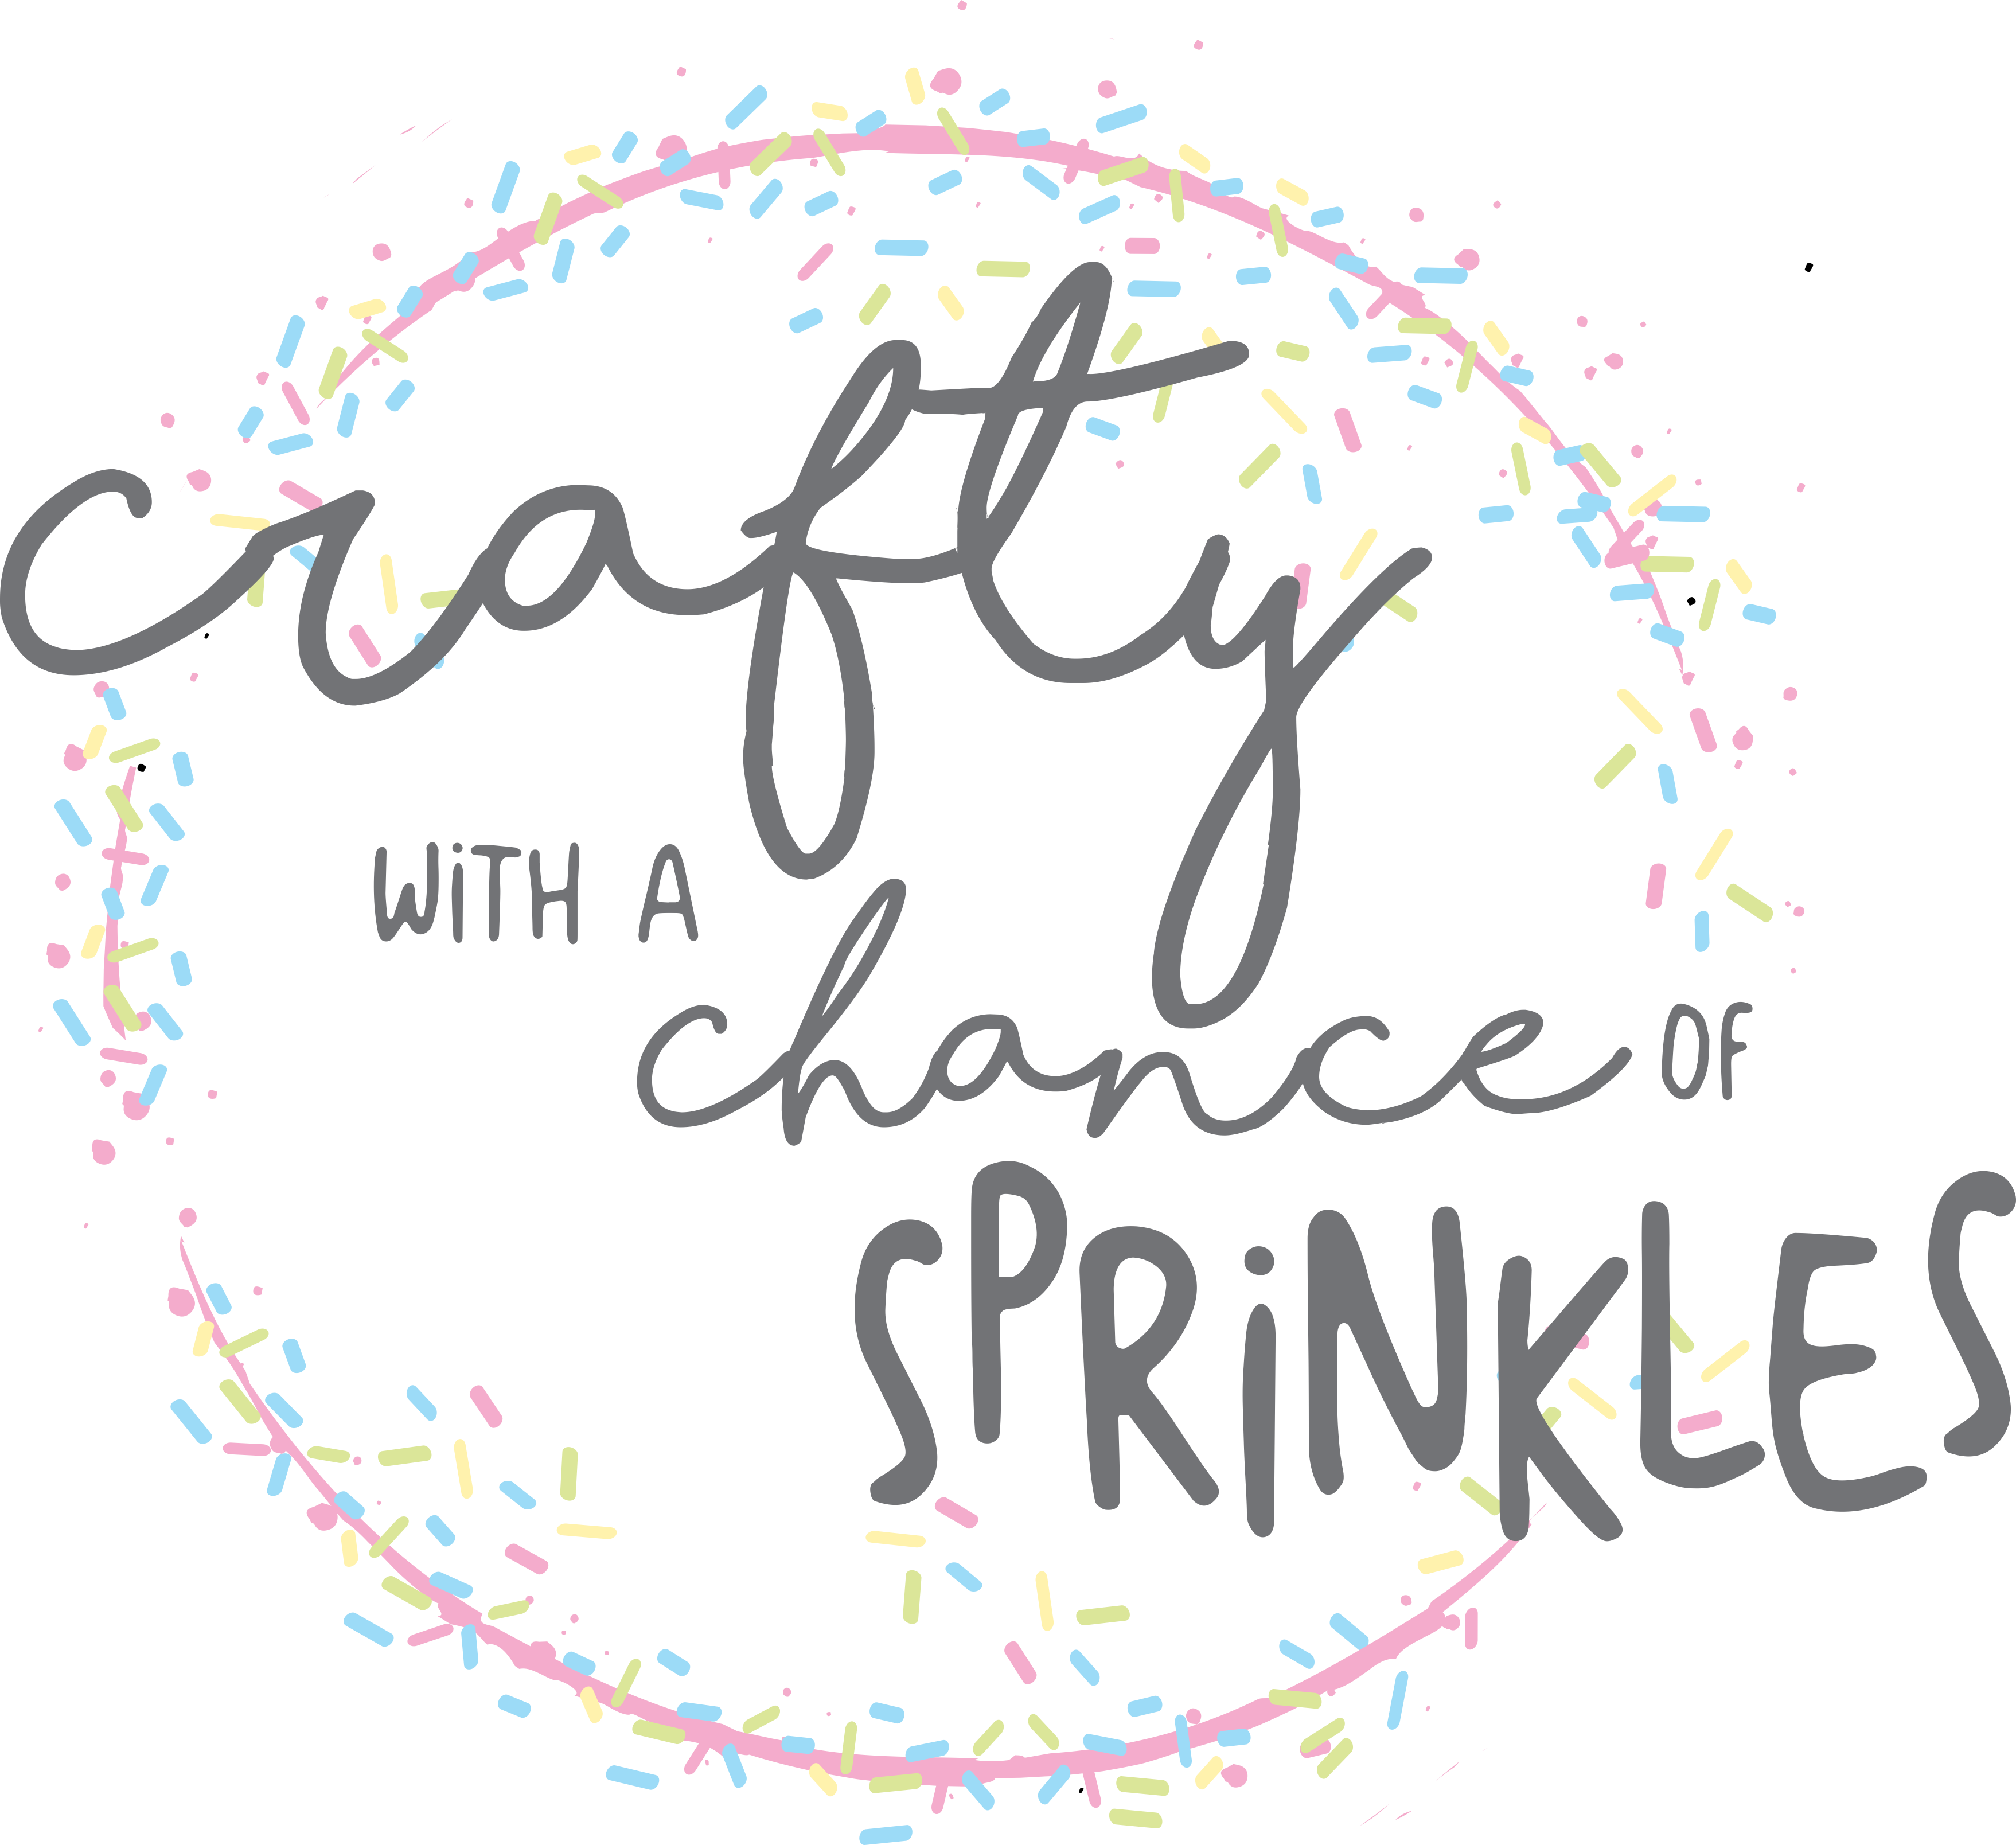 Crafty with a Chance of Sprinkles